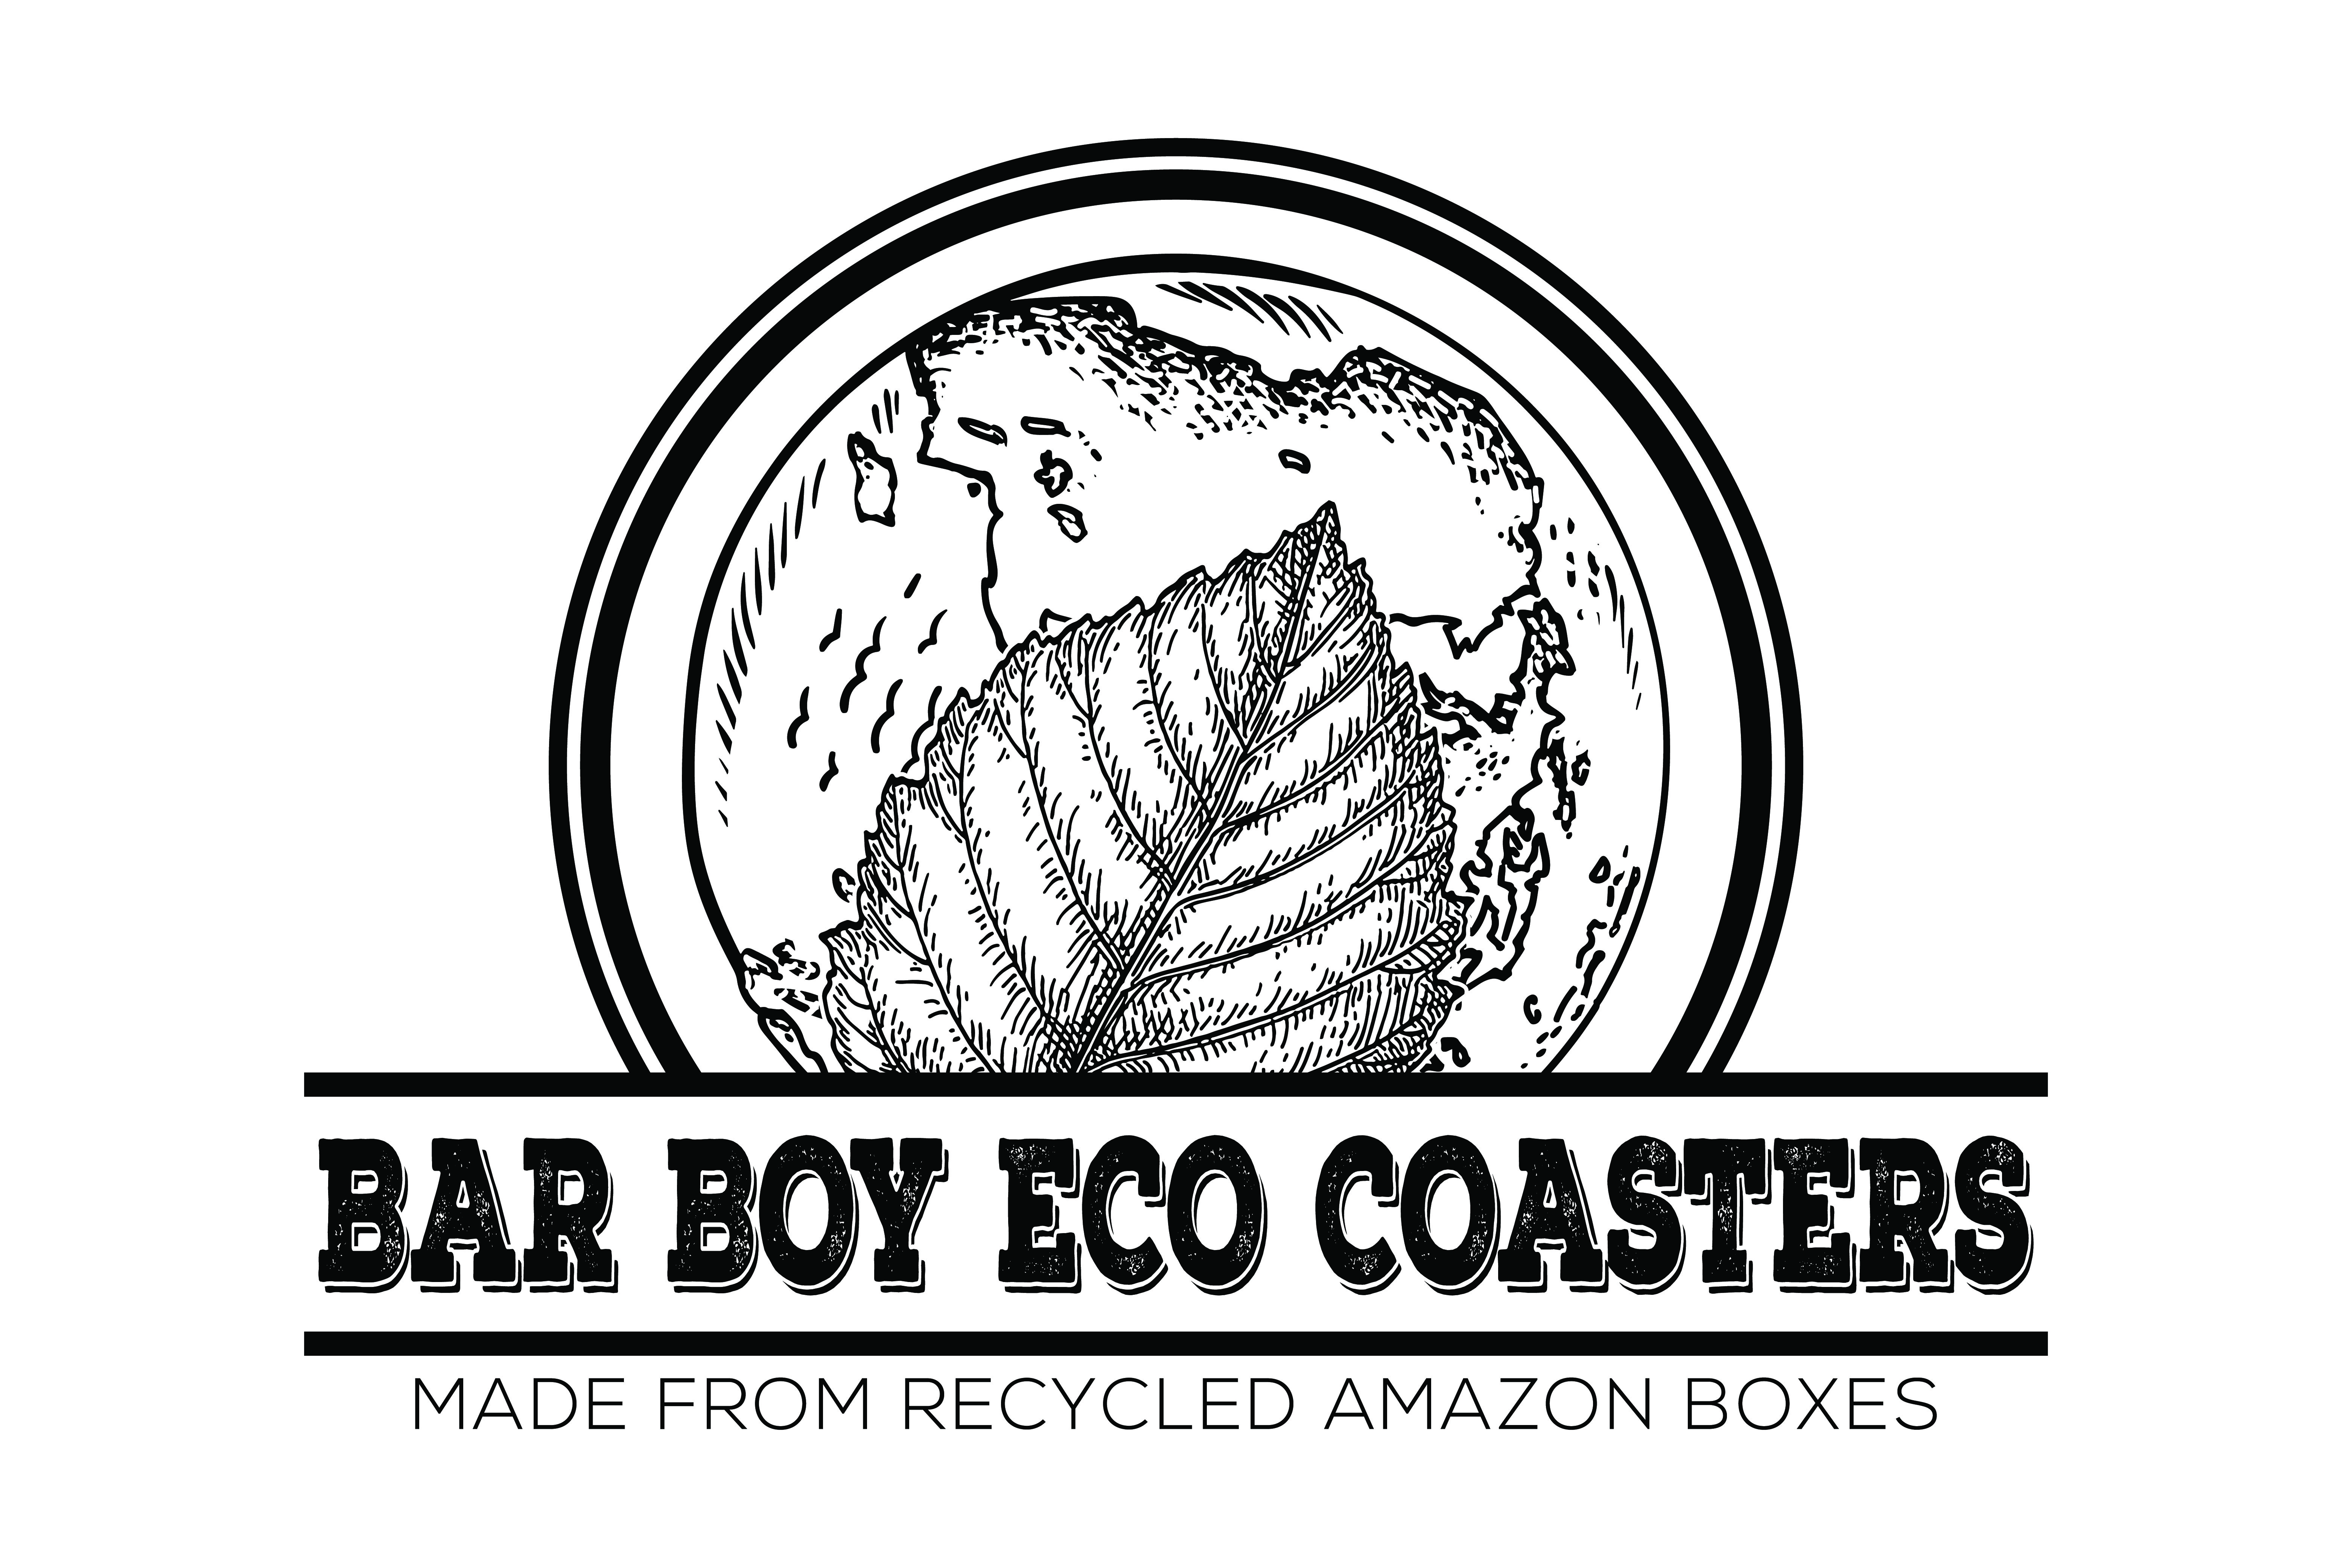 Bar Boy Eco Coasters Recycles Used Amazon Boxes into Redesigned Eco-Friendly Drink Coasters